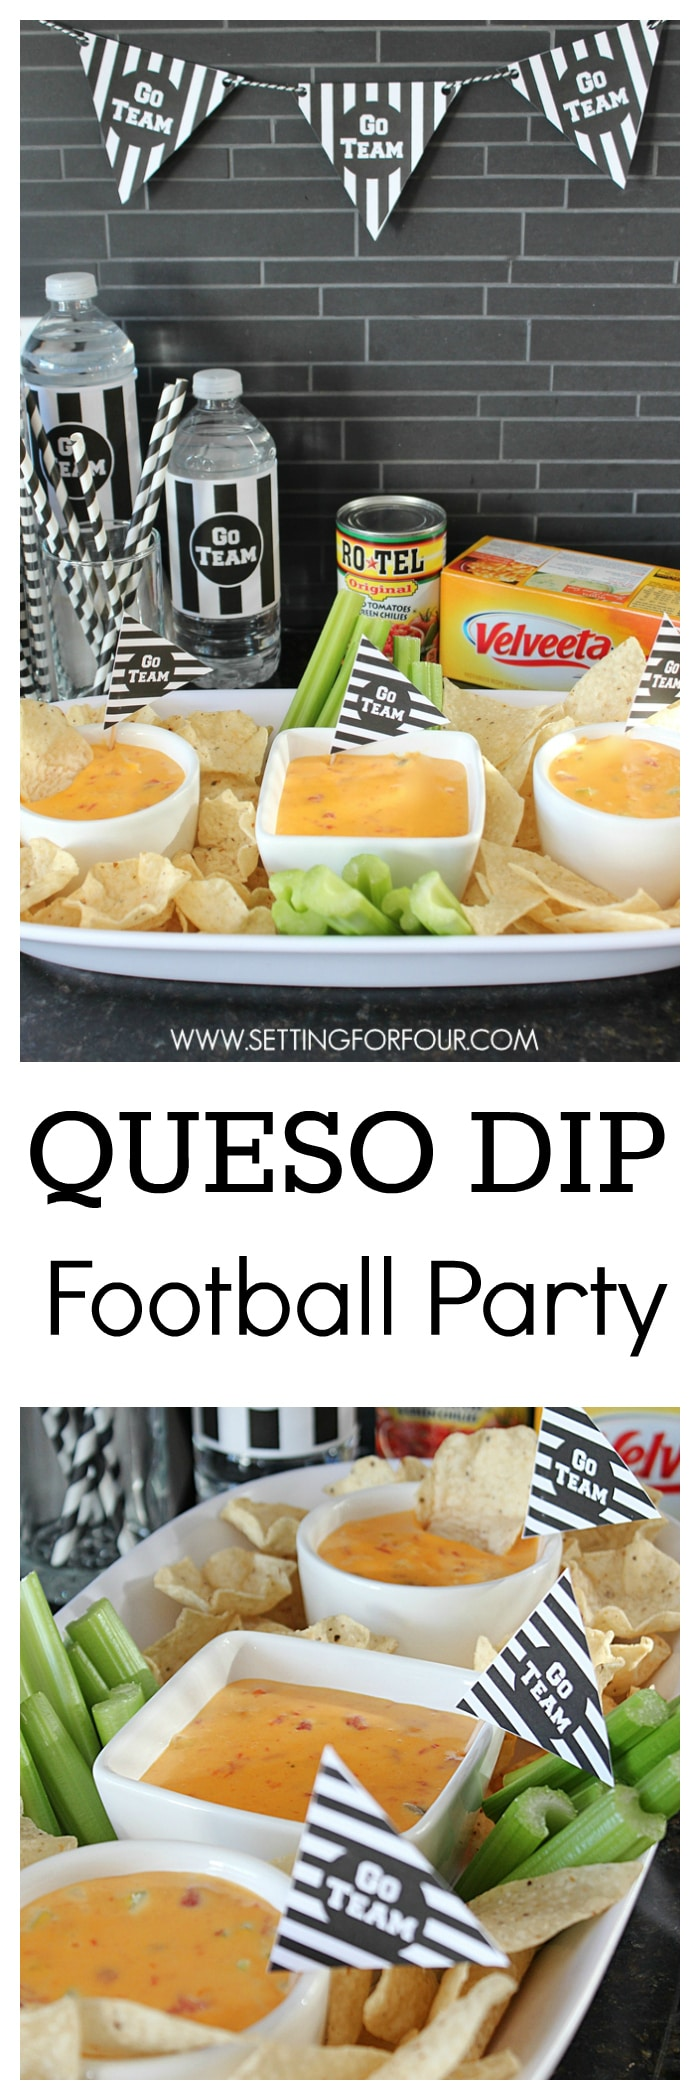 Throw the perfect festive Superbowl party or Football party with this yummy, zesty Velveeta Queso Dip Recipe! Perfect appetizer snack for movie nights too. www.settingforfour.com